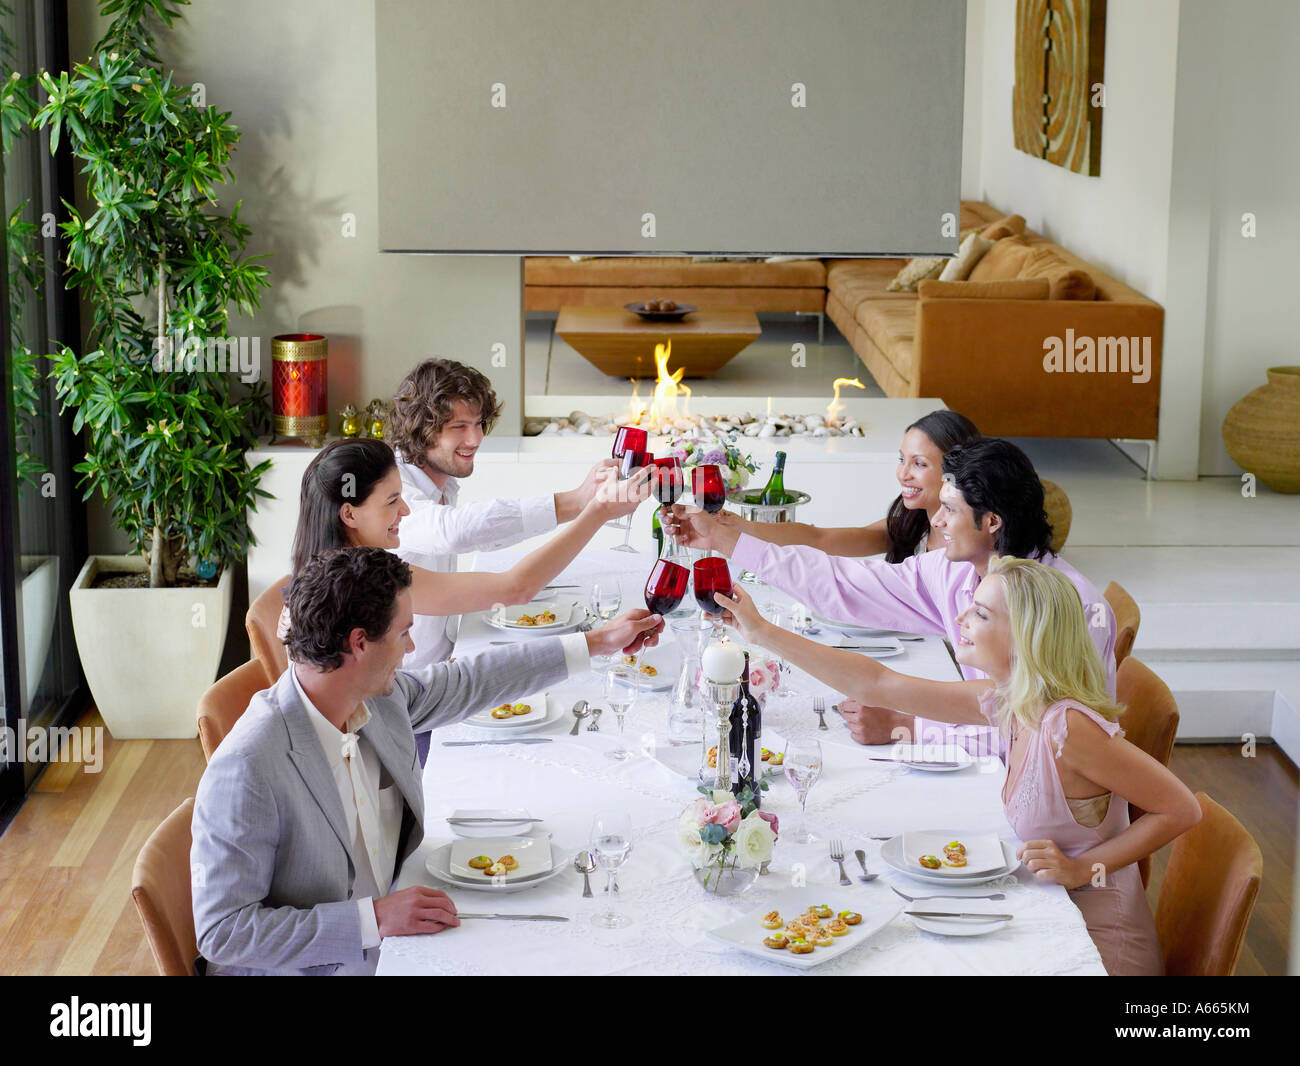 Friends toasting across table at a formal dinner party, side view - Stock Image